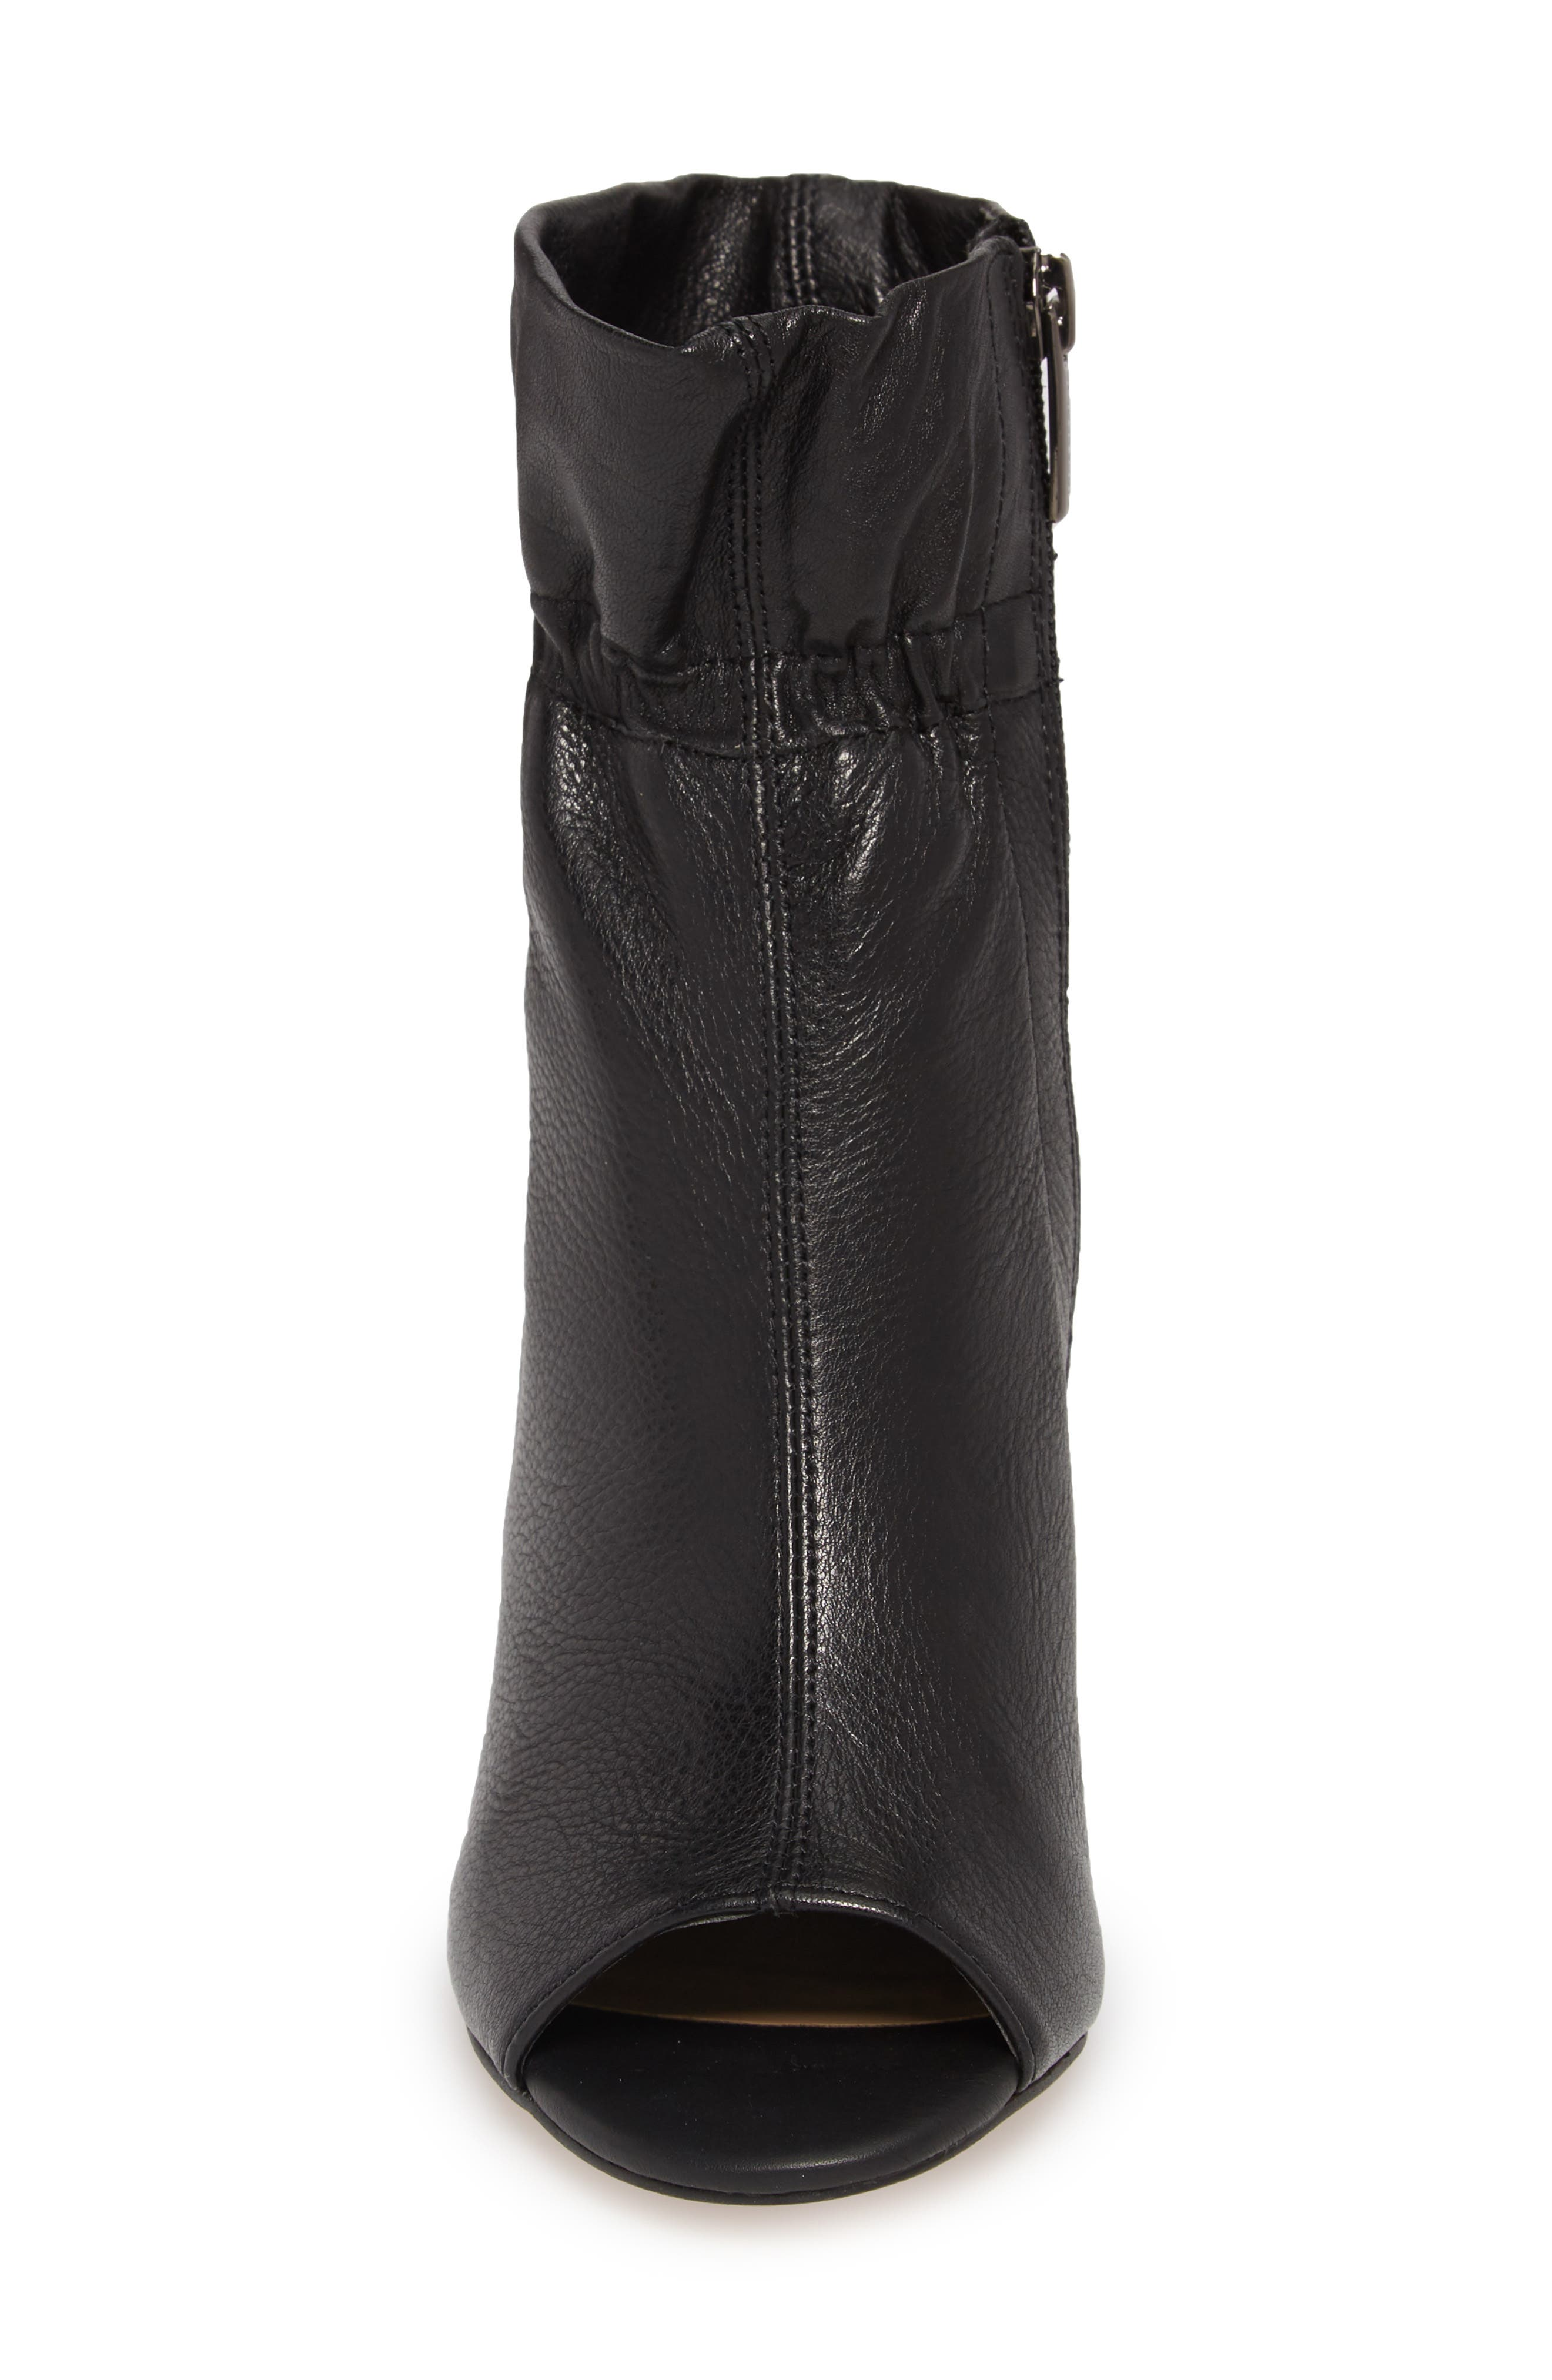 Addiena Bootie,                             Alternate thumbnail 4, color,                             BLACK LEATHER